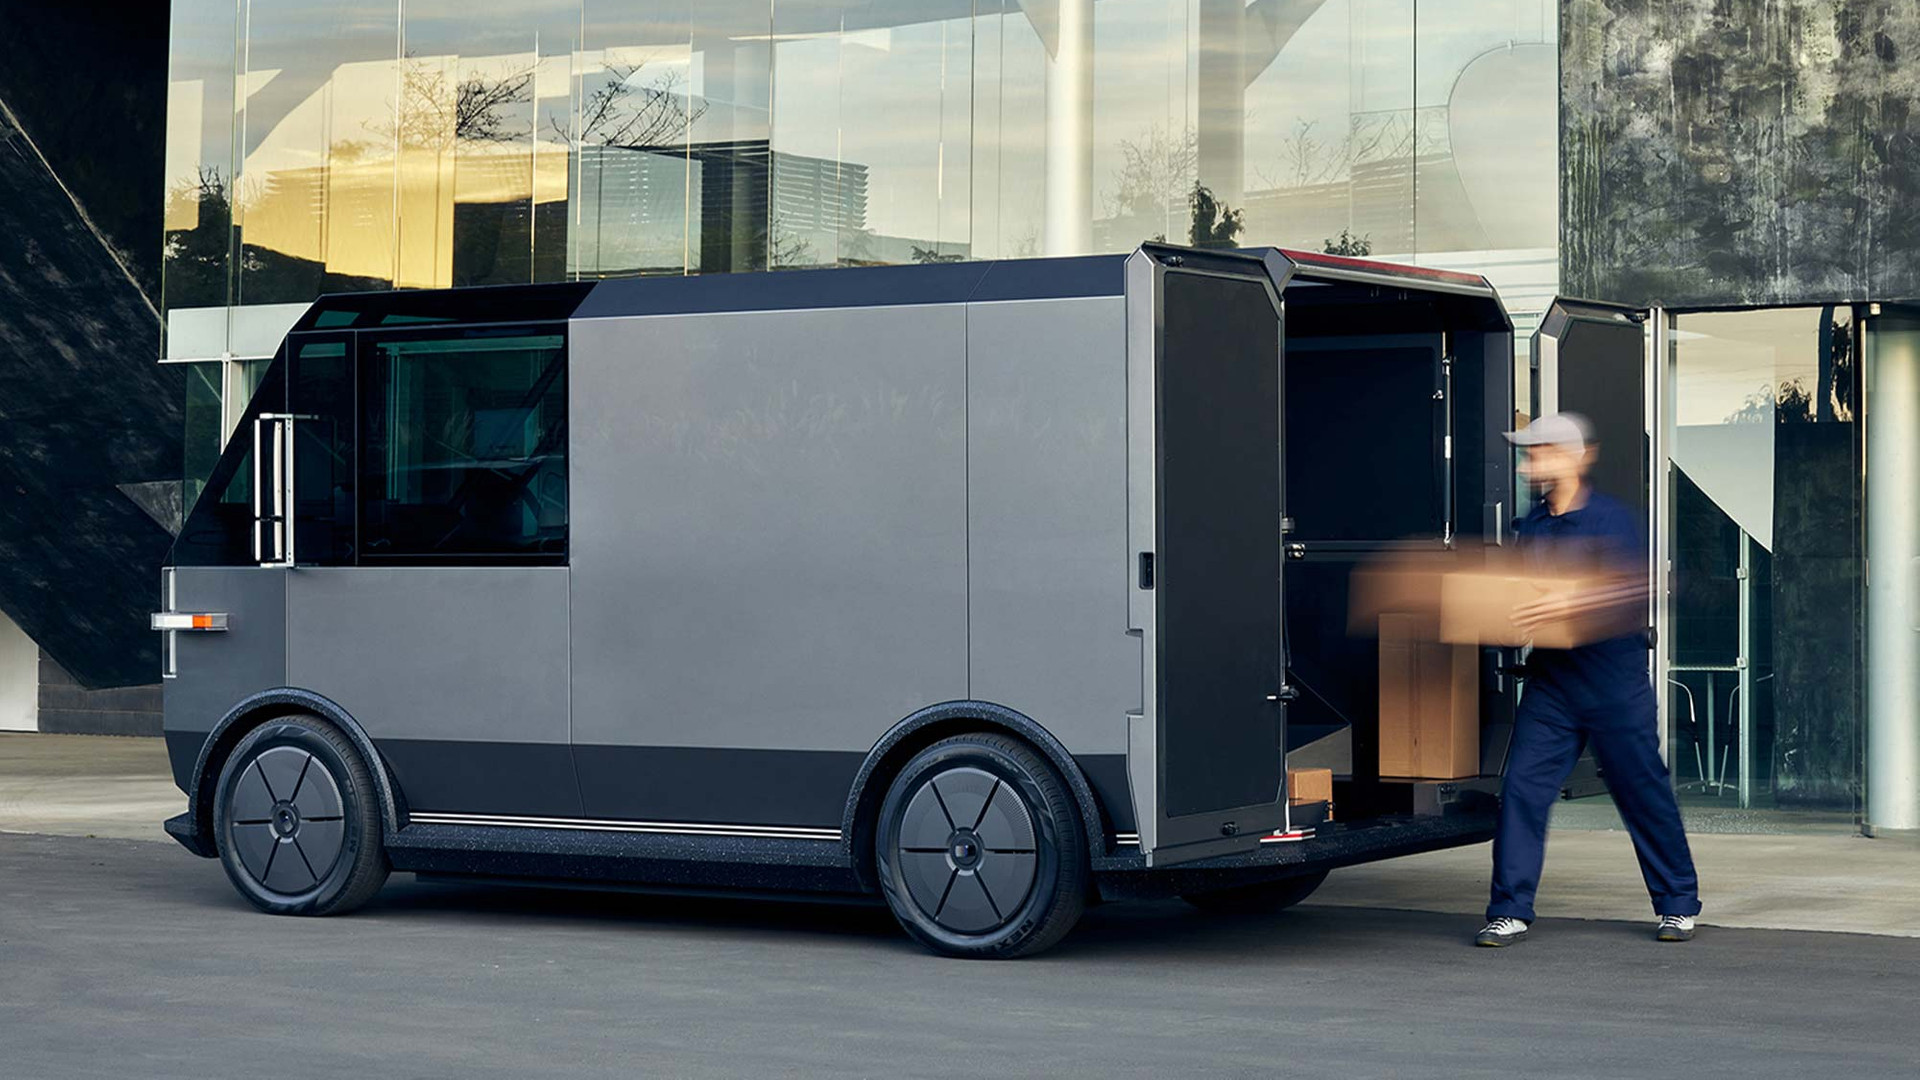 The Canoo multi-purpose delivery vehicle (MPDV) - In Action